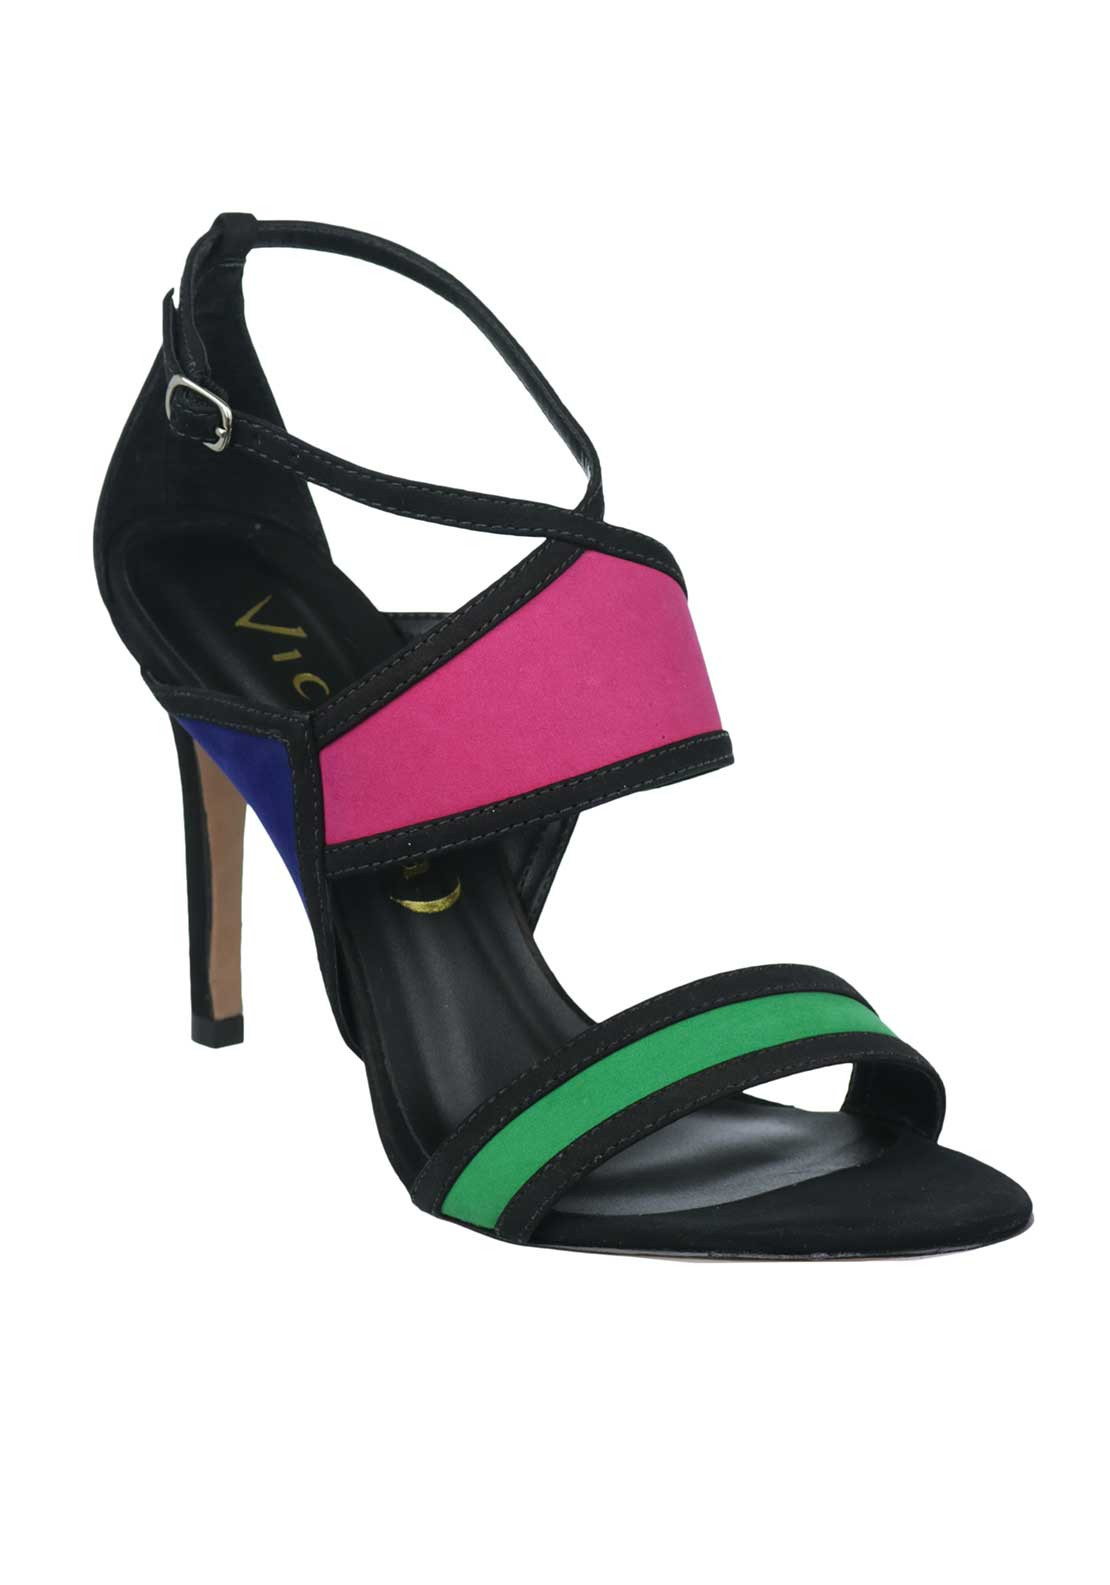 Unique Footwear Suede Colour Block Strappy Sandals, Multi-Coloured